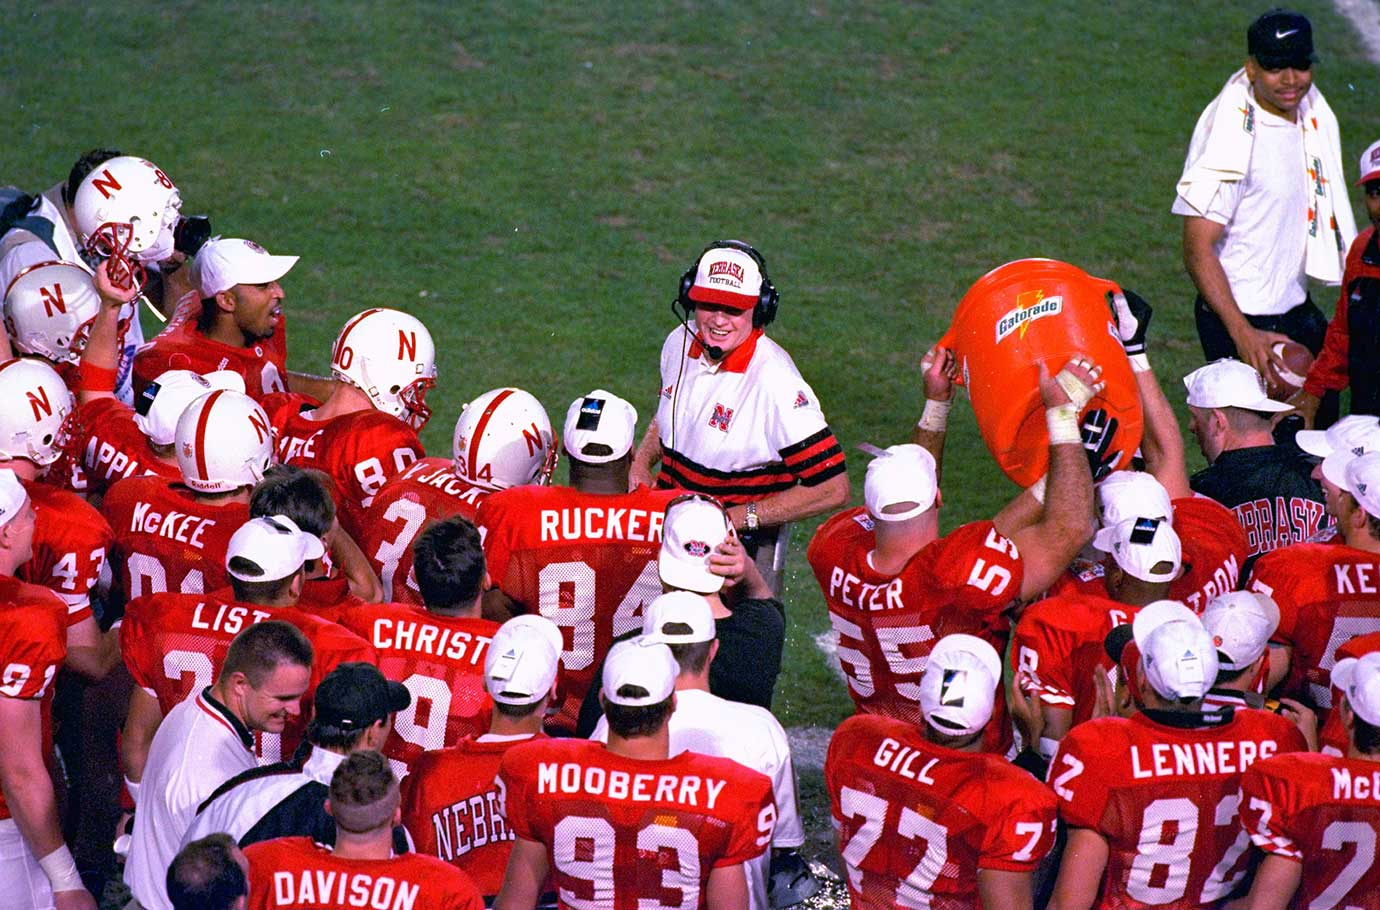 Talk about leaving on a high note. In Tom Osborne's last five years at Nebraska, the Cornhuskers went 60-3, including three national championships. In 1997, his final season, Nebraska won the Orange Bowl with a 42-17 victory over a Peyton Manning-led Tennessee squad and shared the national title with Michigan.